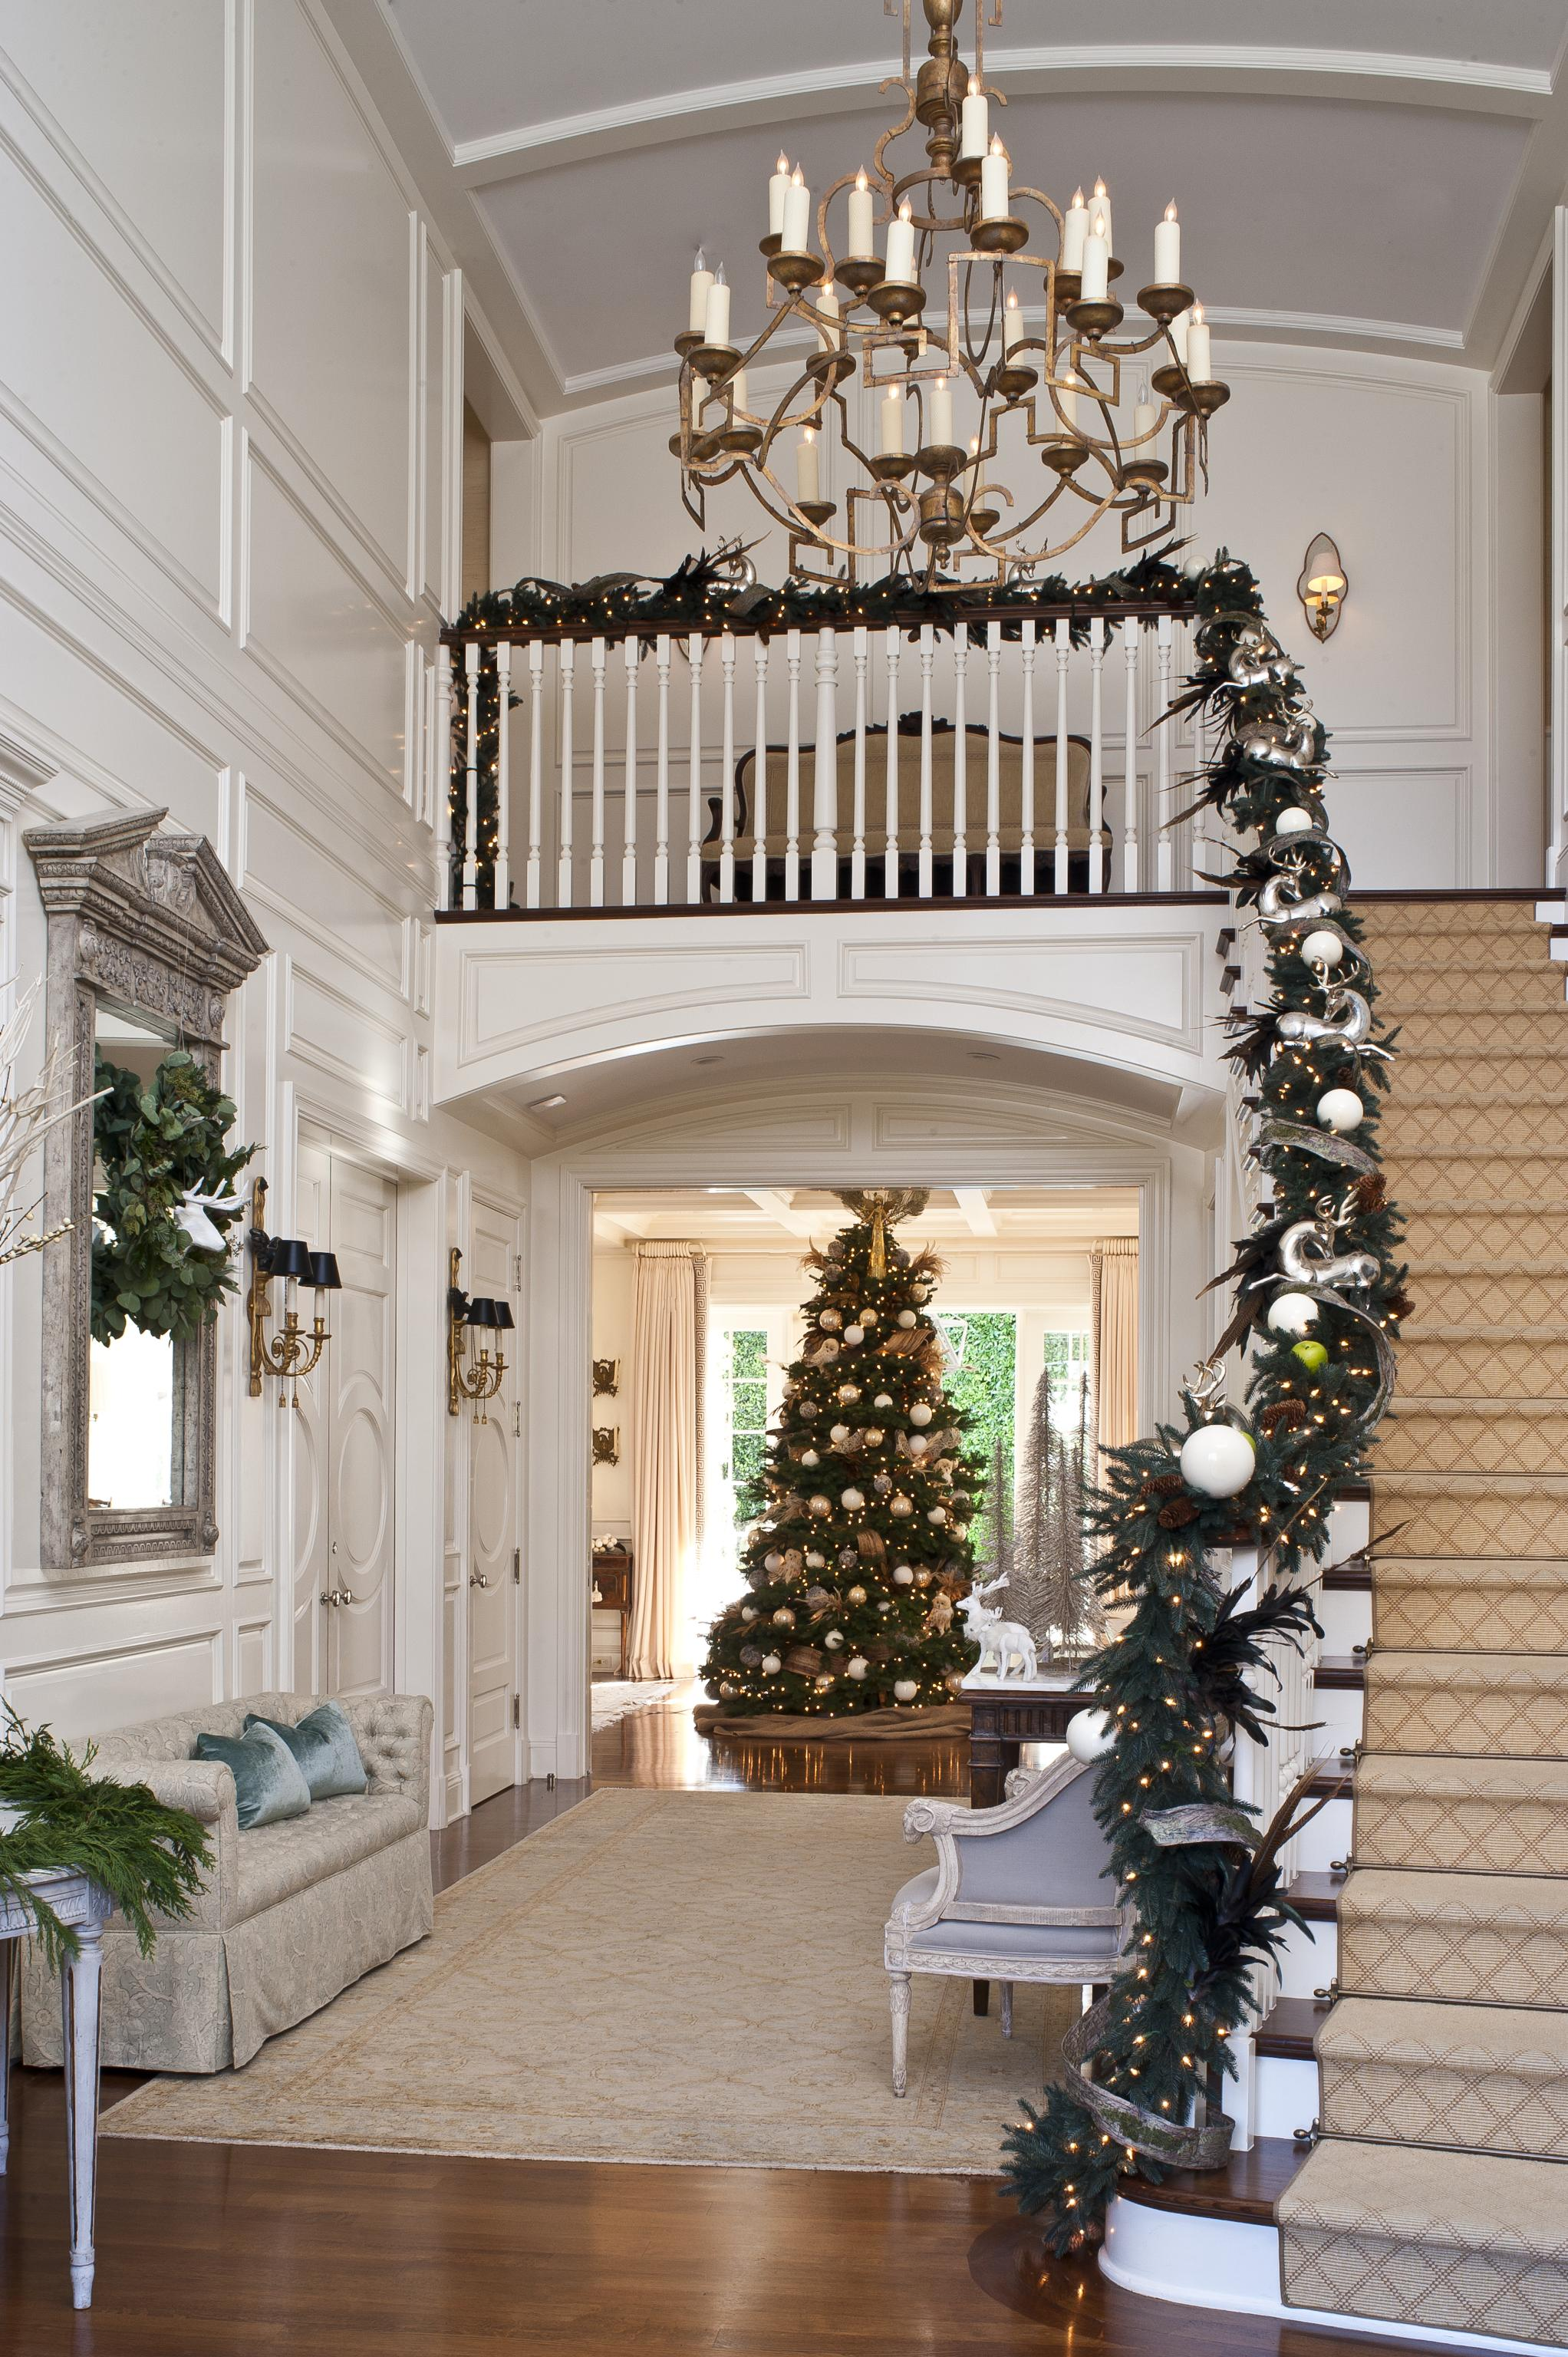 source - Christmas Decorations For Stair Rail